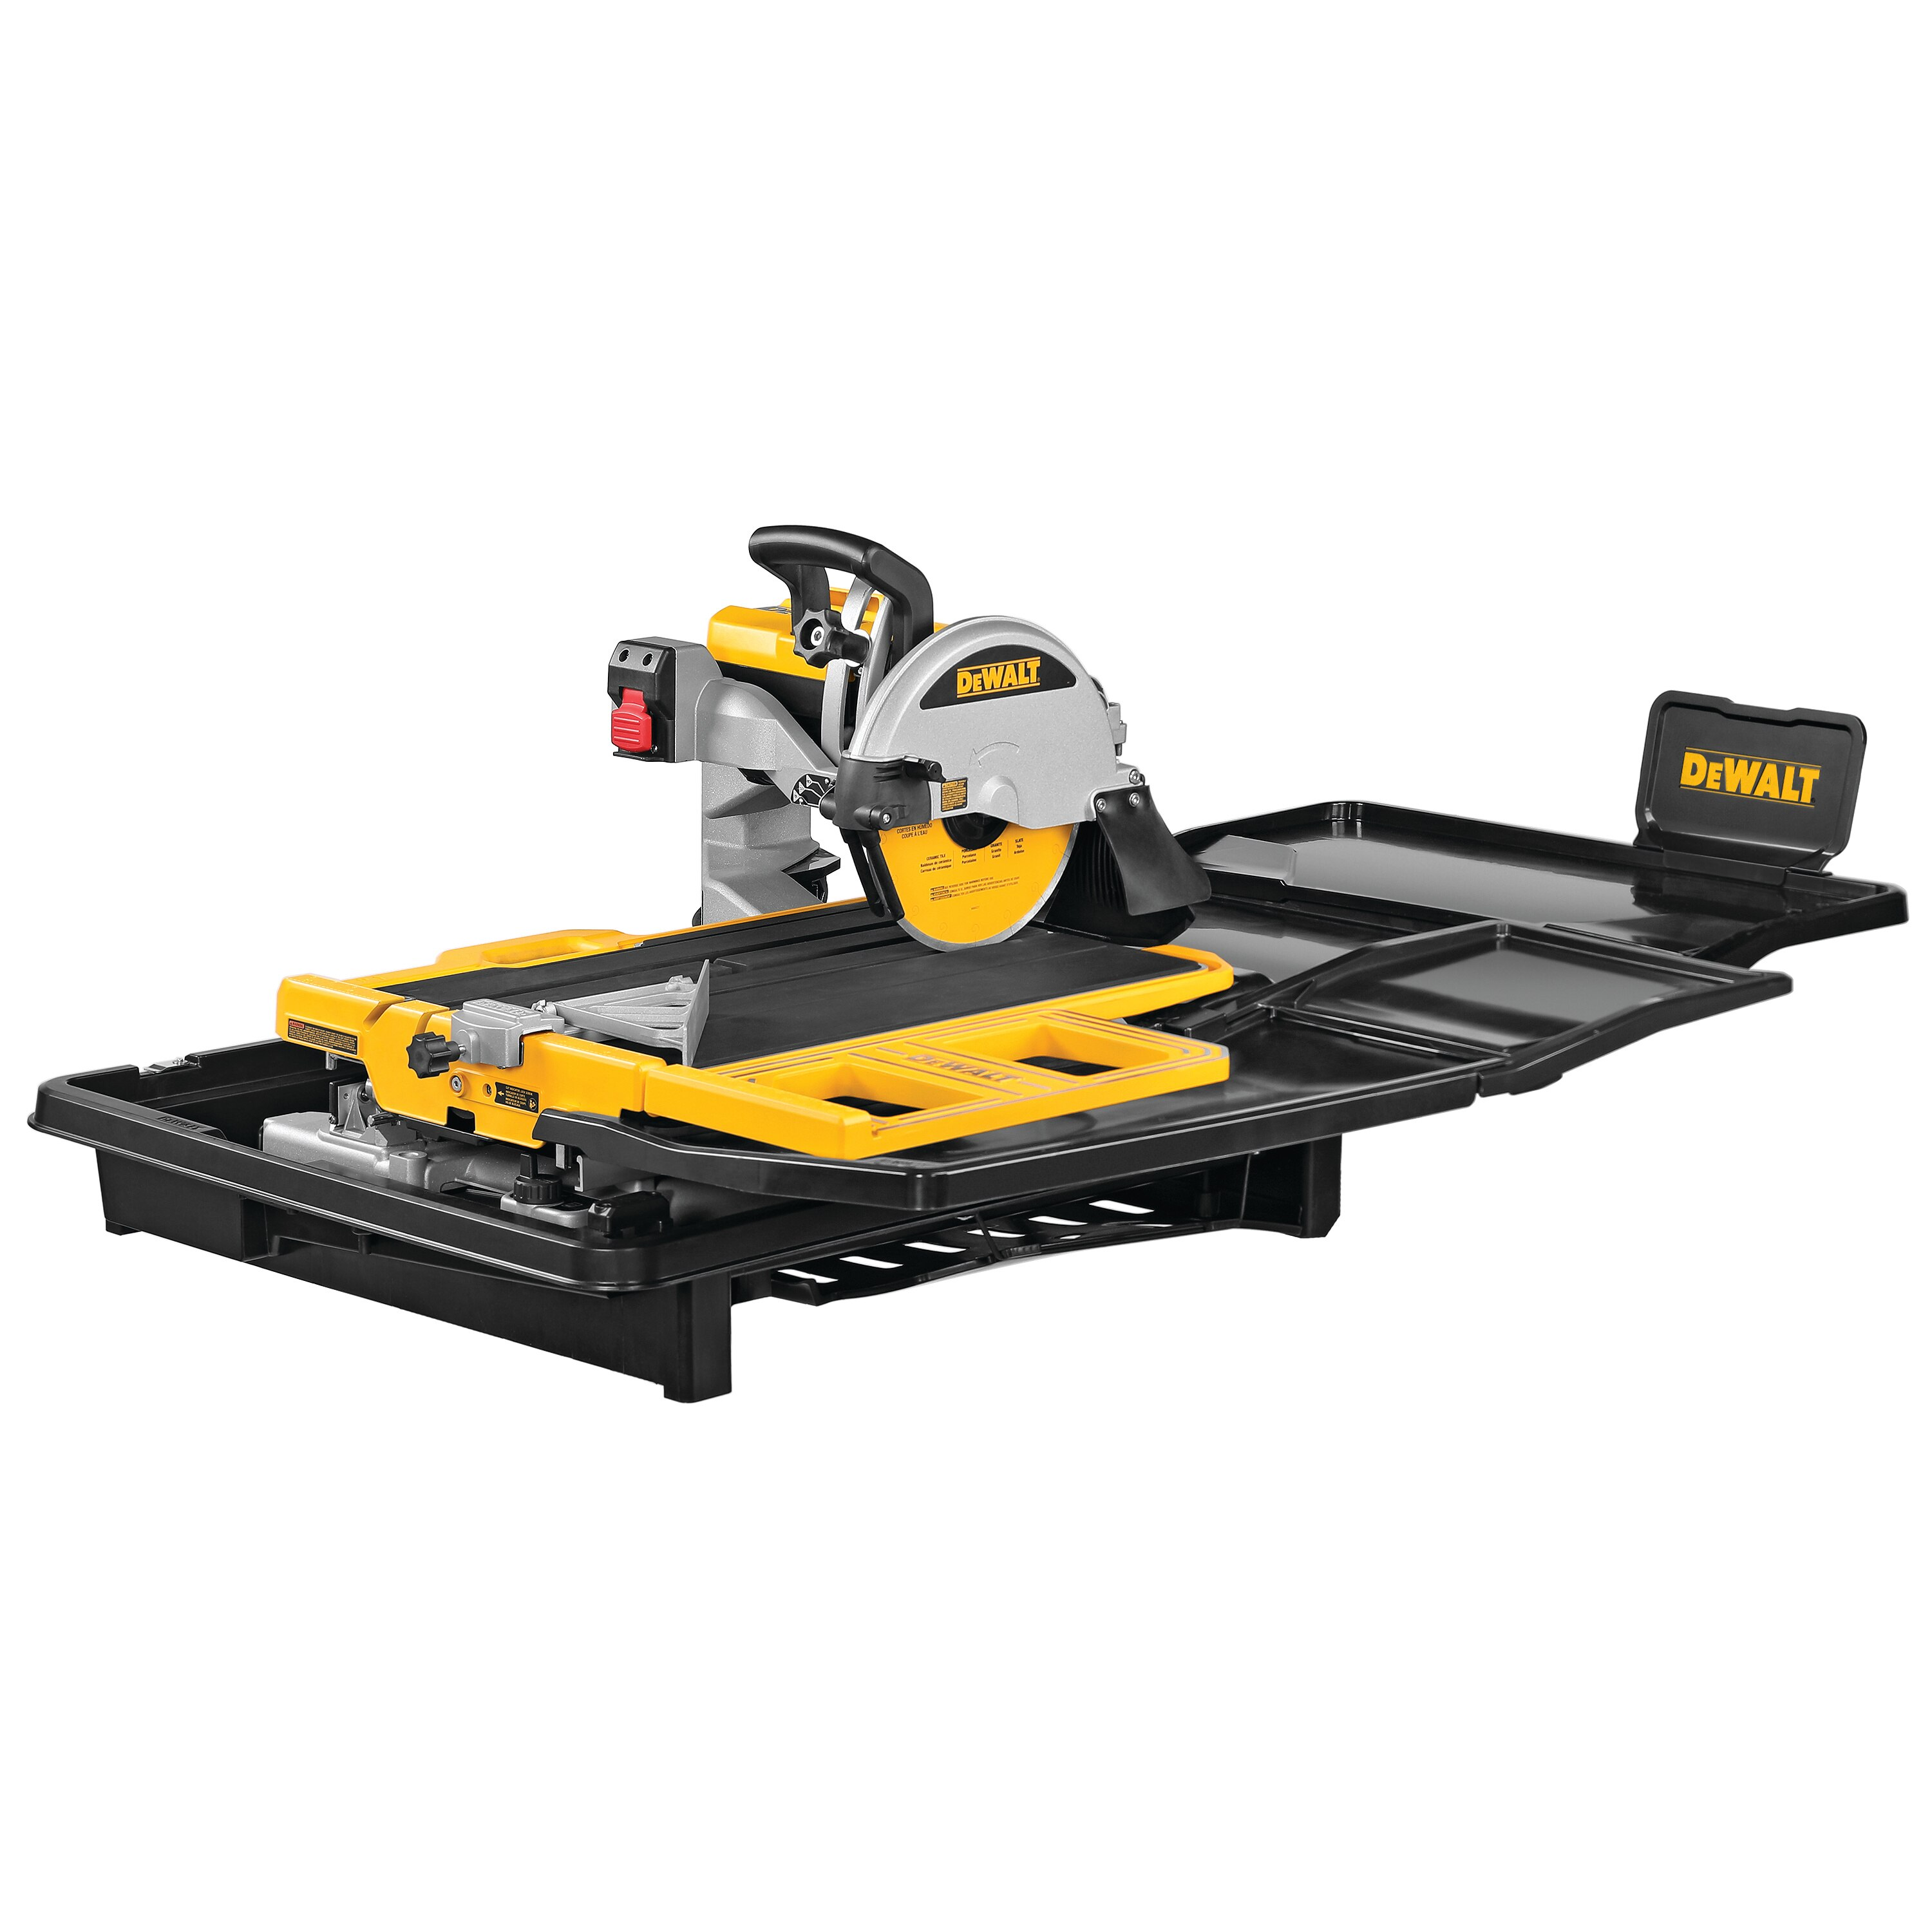 10 In High Capacity Wet Tile Saw D36000 Dewalt